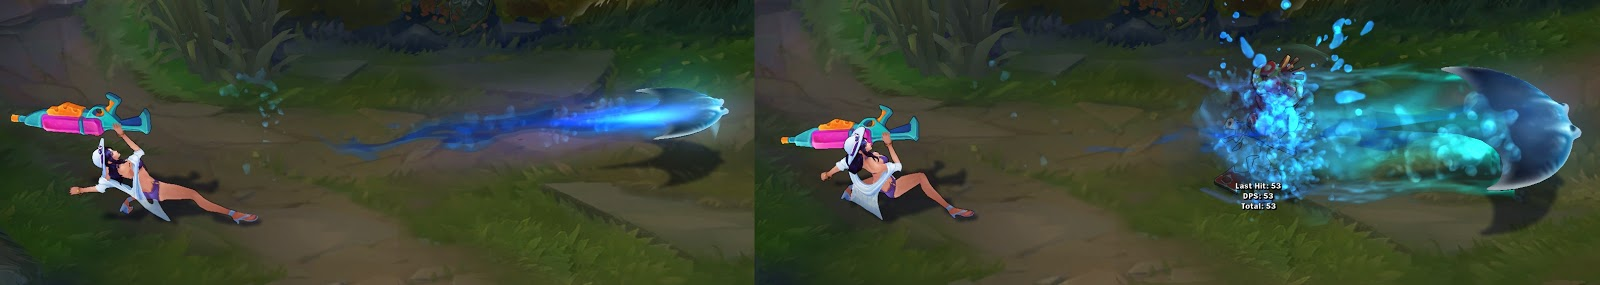 pool party caitlyn skin spell animation